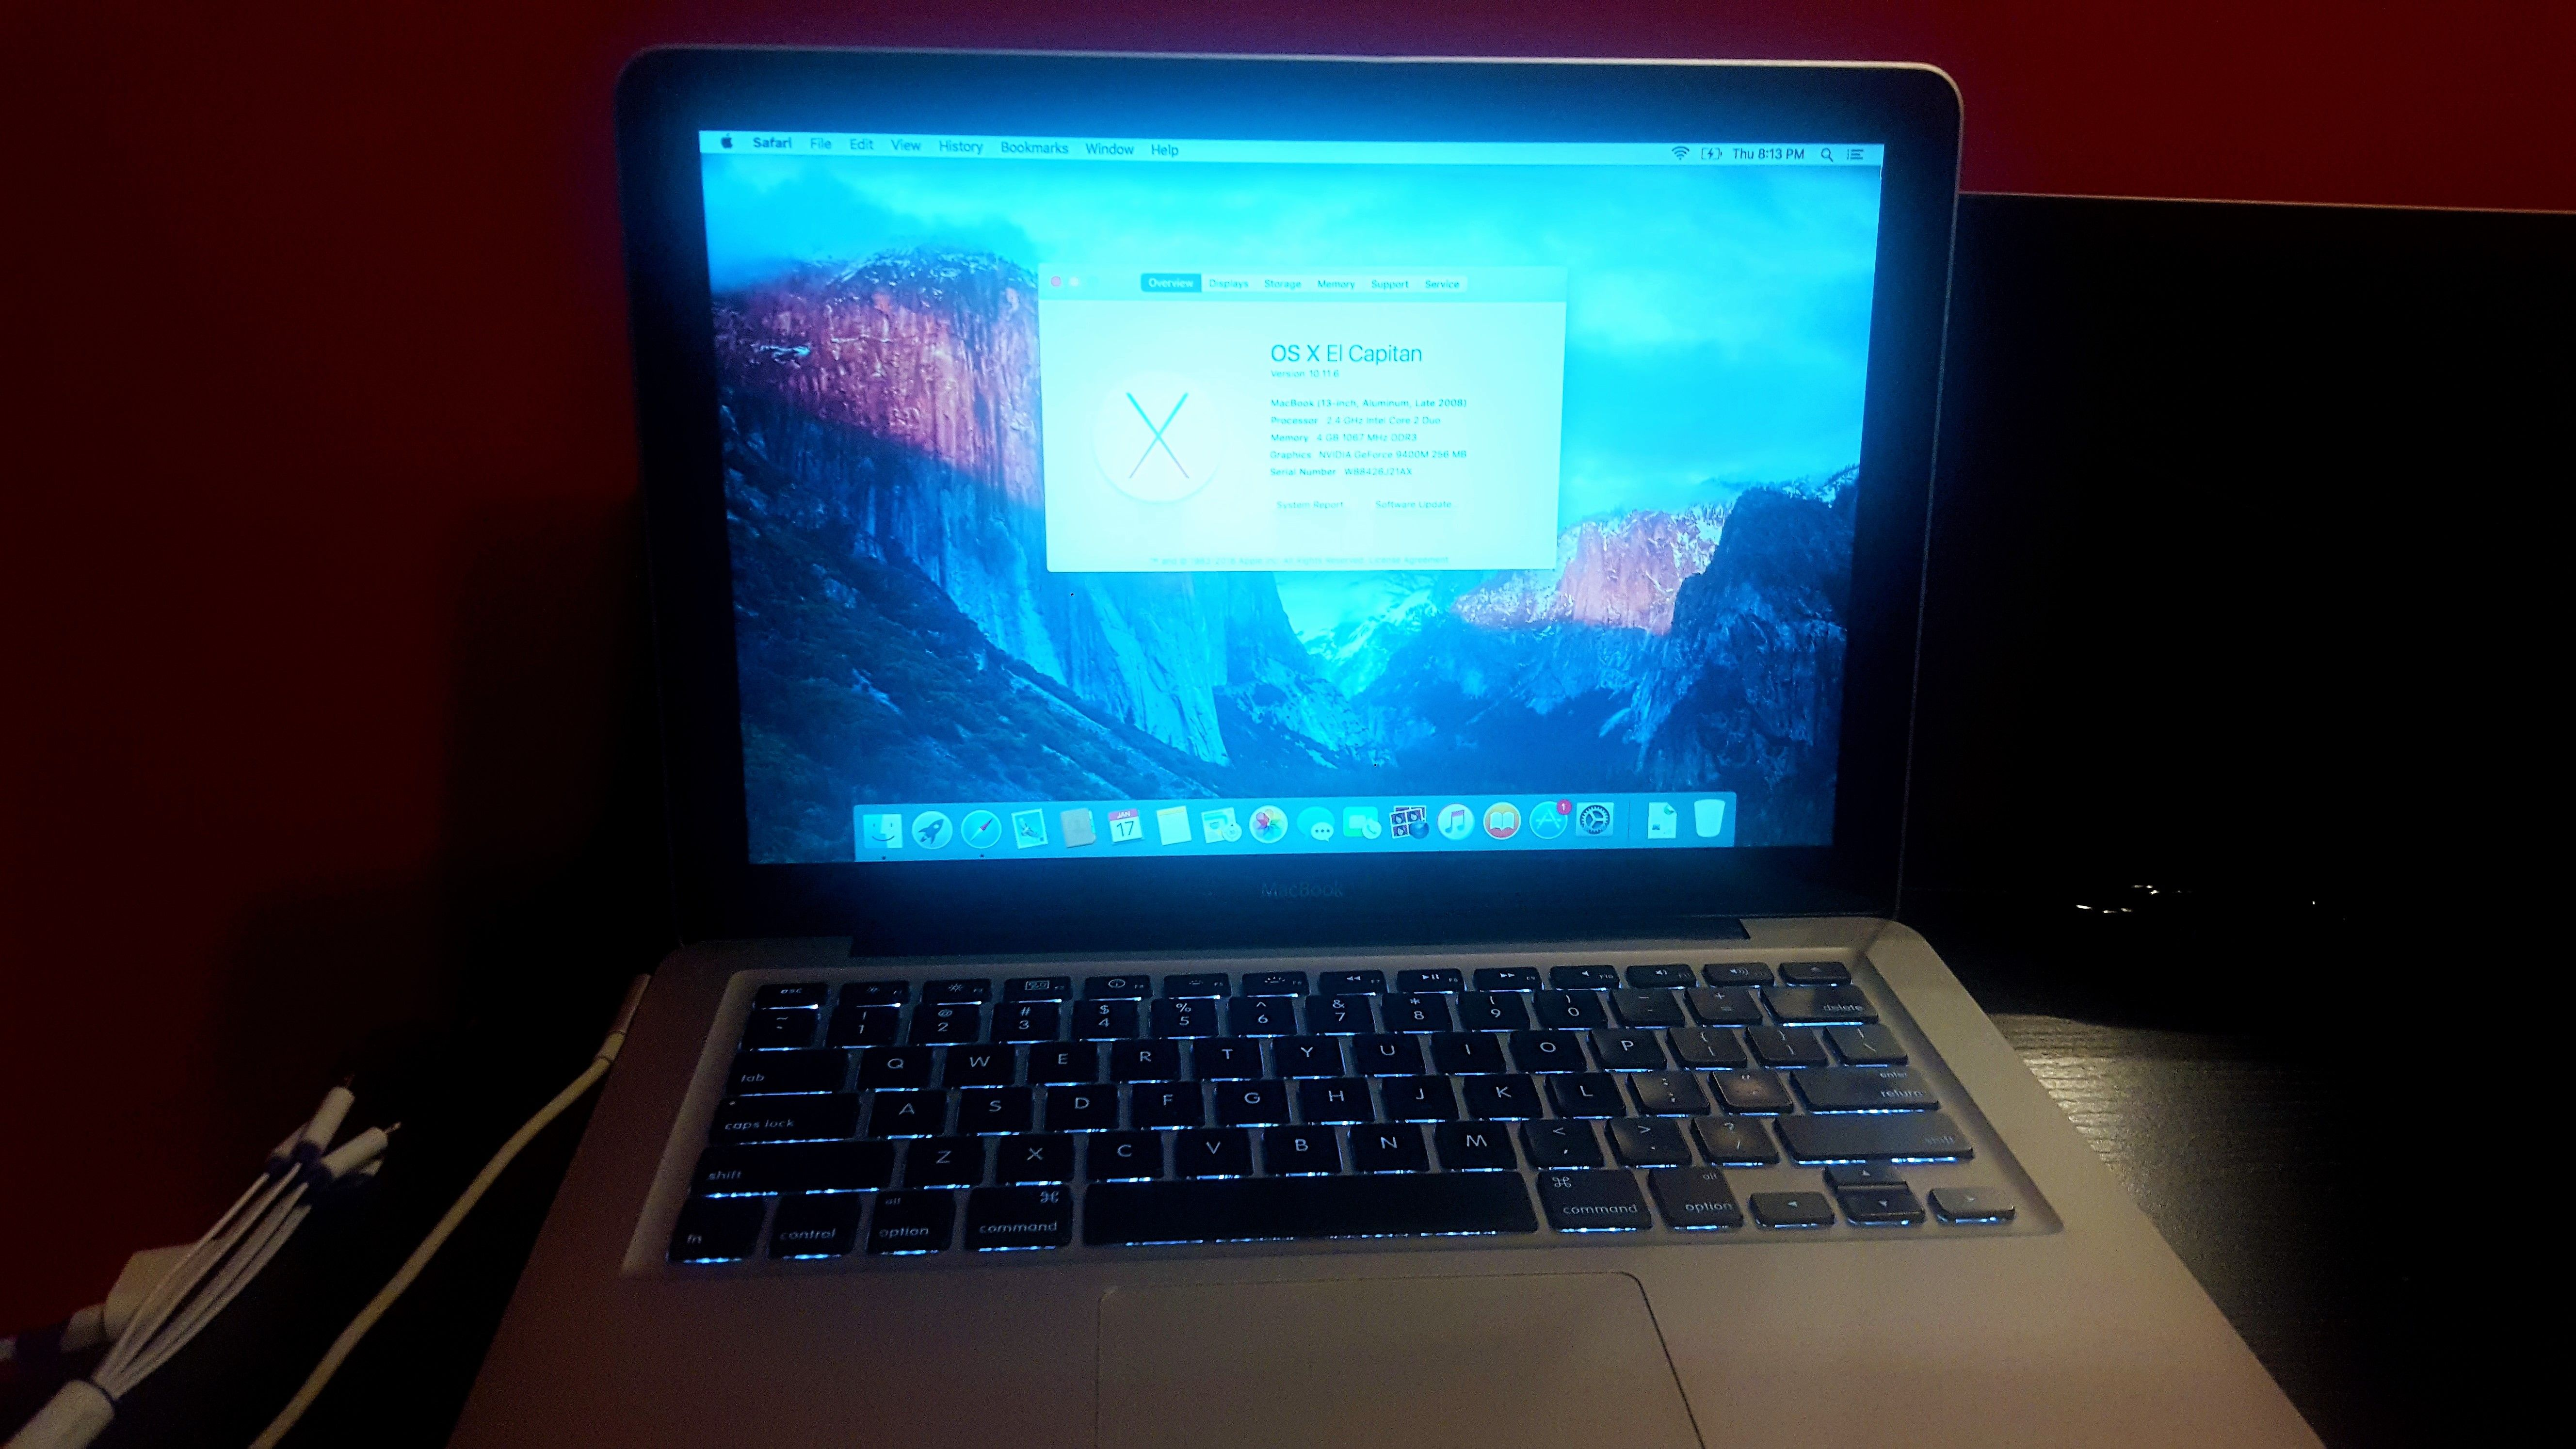 Macbook Pro 13 A1278 Core 2 Duo 2 4ghz 4gb Ram 500gb Hd New Battery Mb467lla Late 2008 Black Cover Case Included Macbook Pro Macbook Pro For Sale Macbook